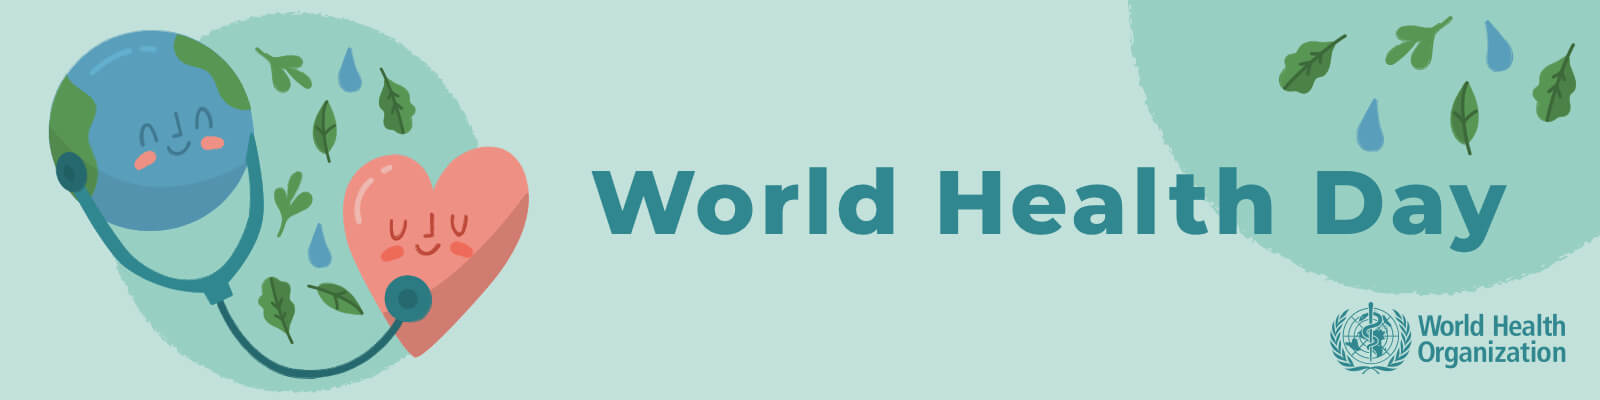 World Health Day 2020: What You Need to Know